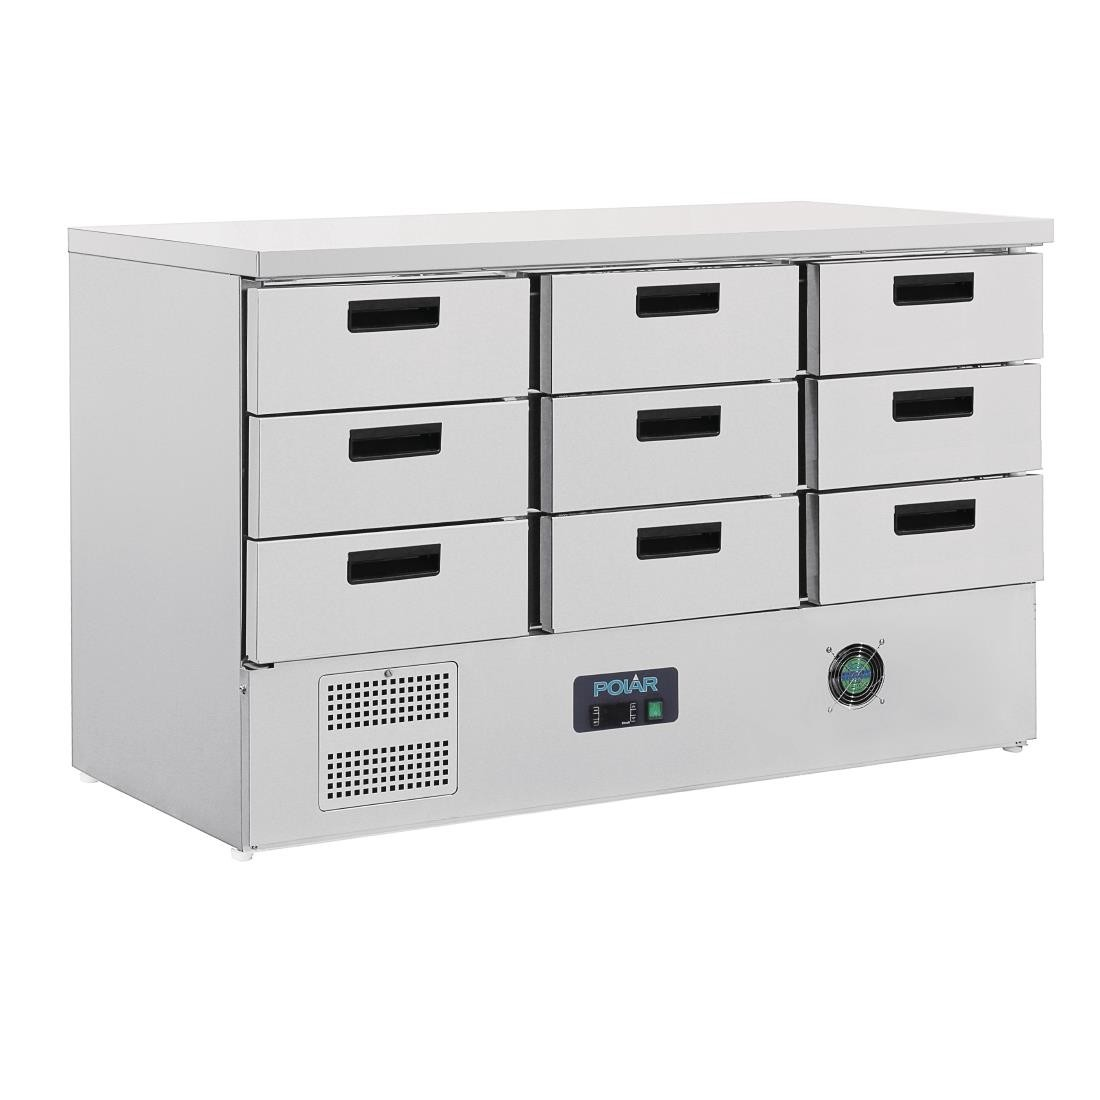 Polar FA441 G-Series Refridgerated Counter with Nine Drawers